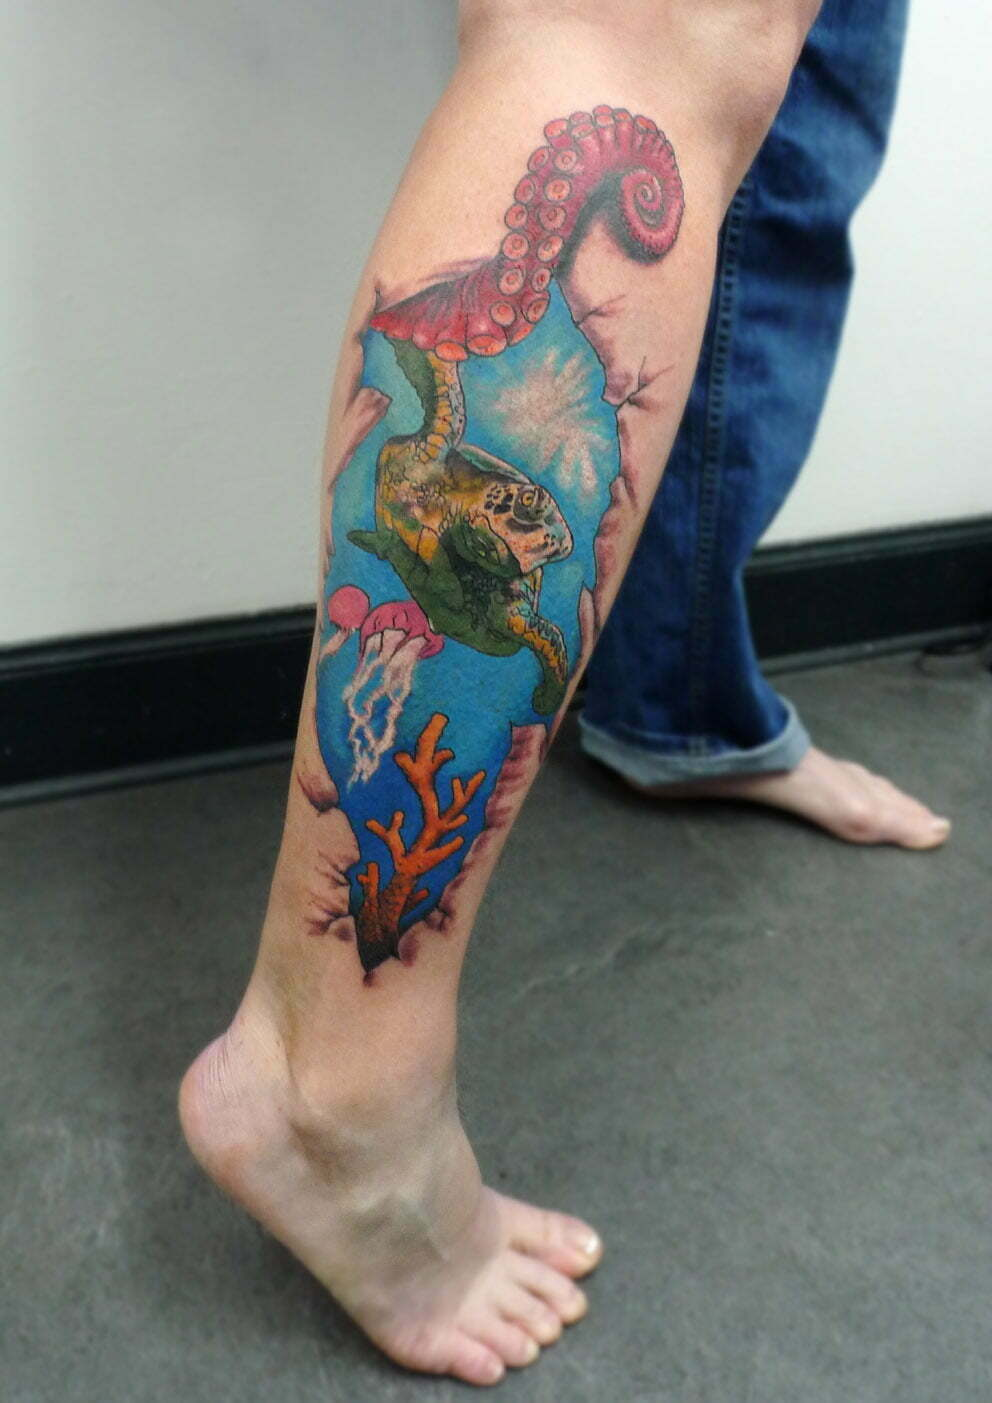 Underwater scene tattoo